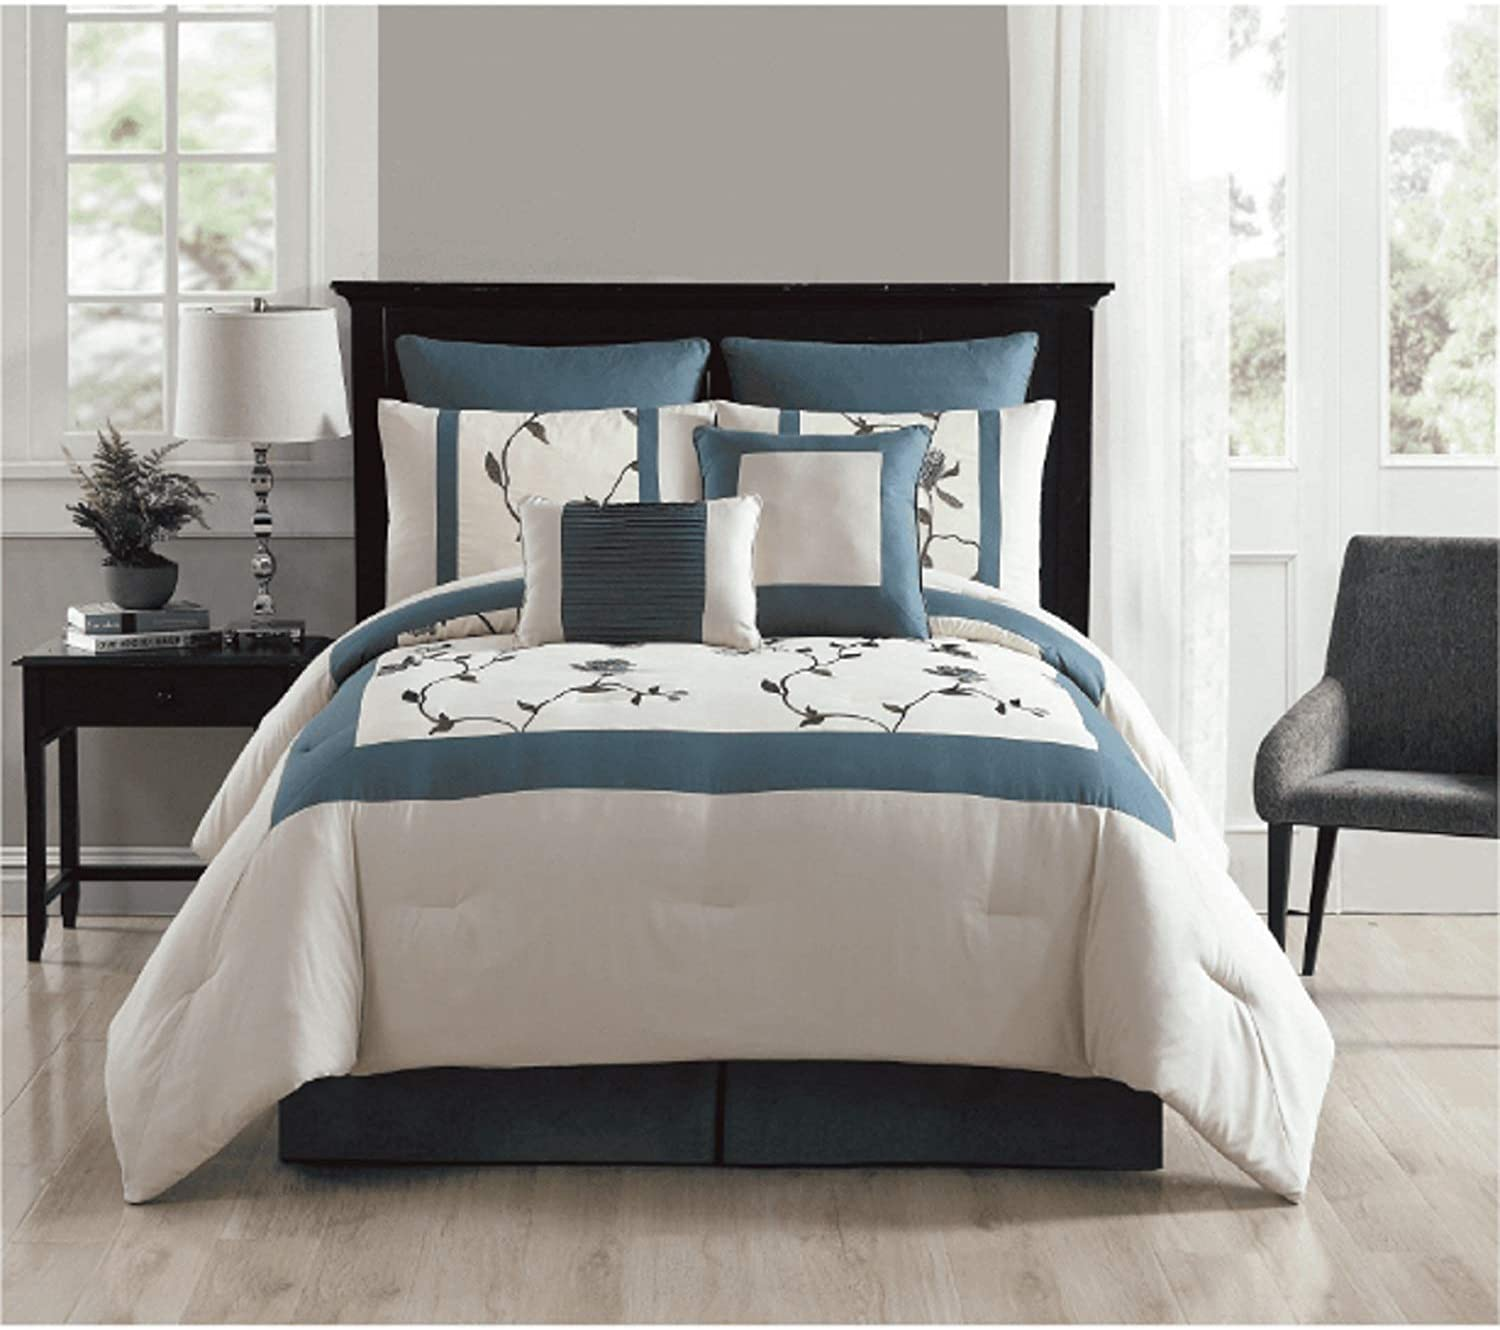 VCNY 8 Piece Trousdale Embroidered Comforter Set, Queen,